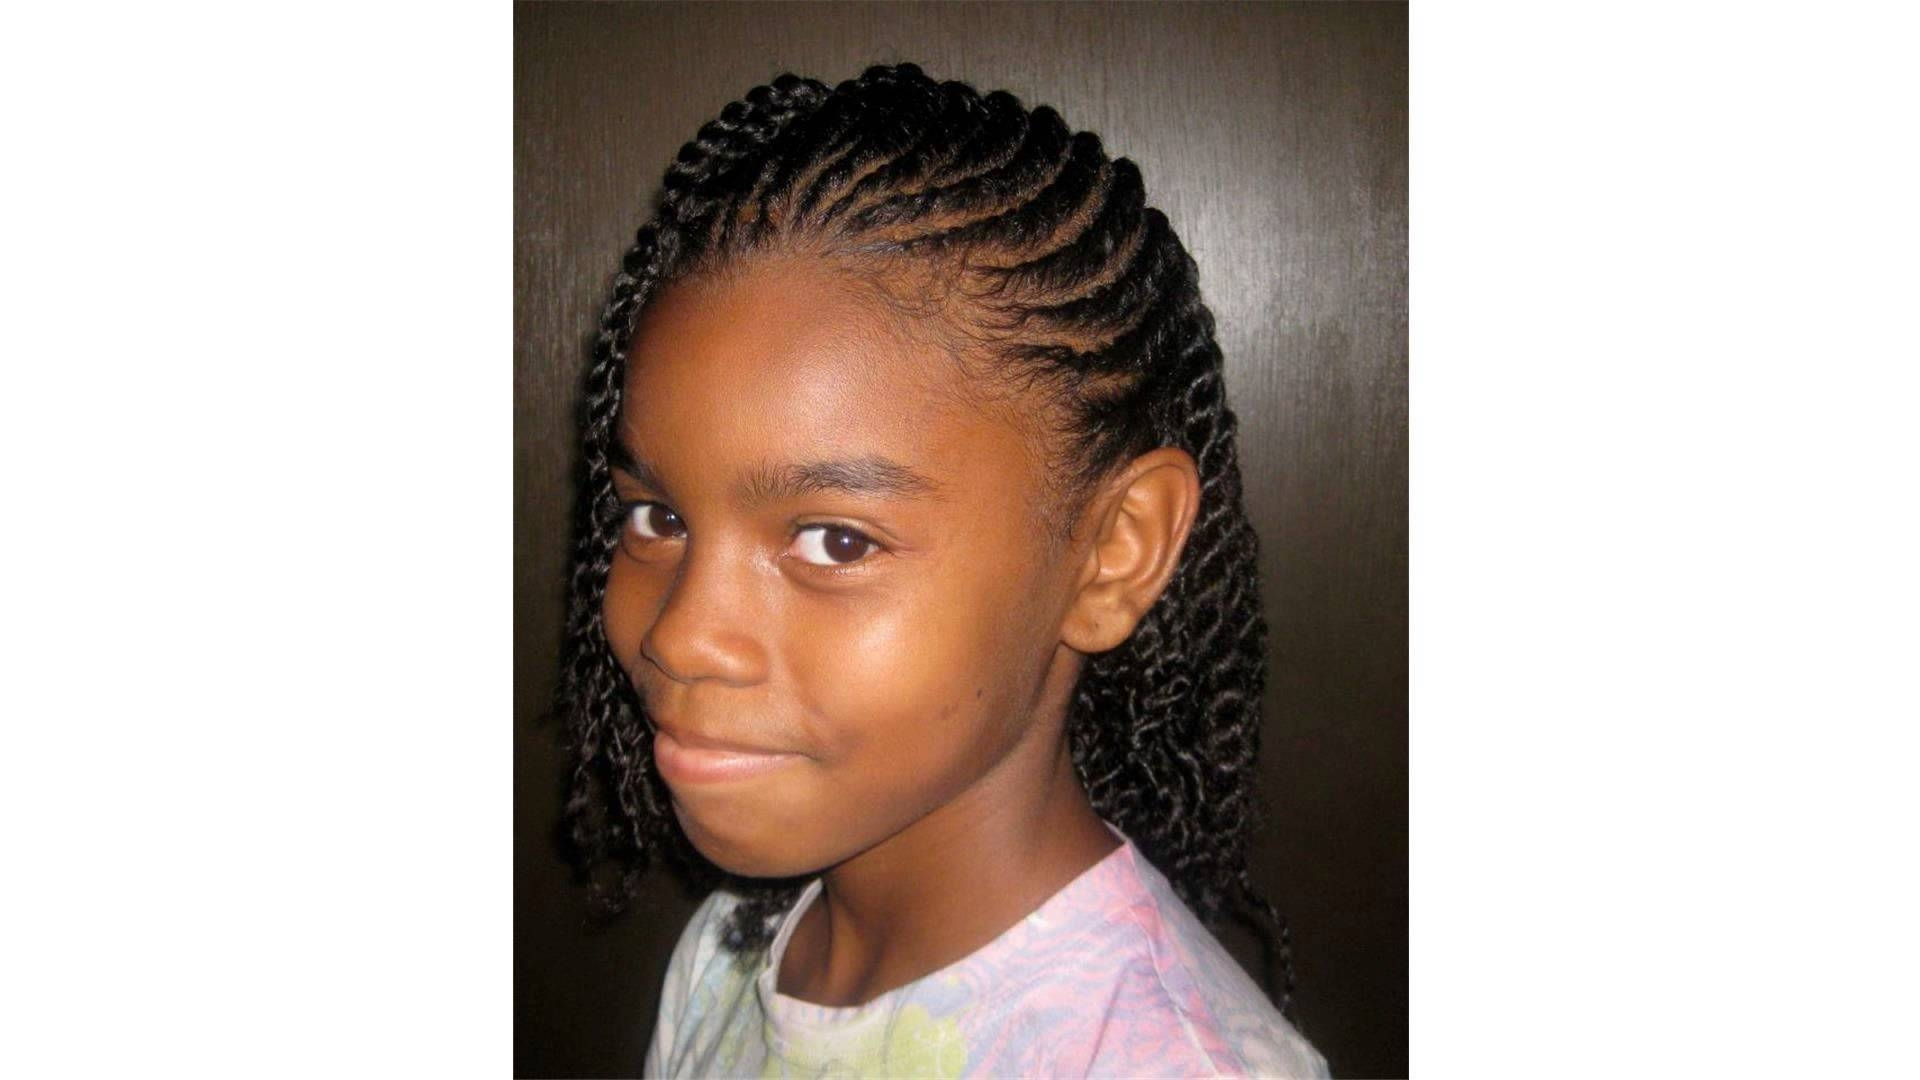 Trendy Braided Ethnic Hairstyles With African American Braided Hairstyles For Kids (View 11 of 15)